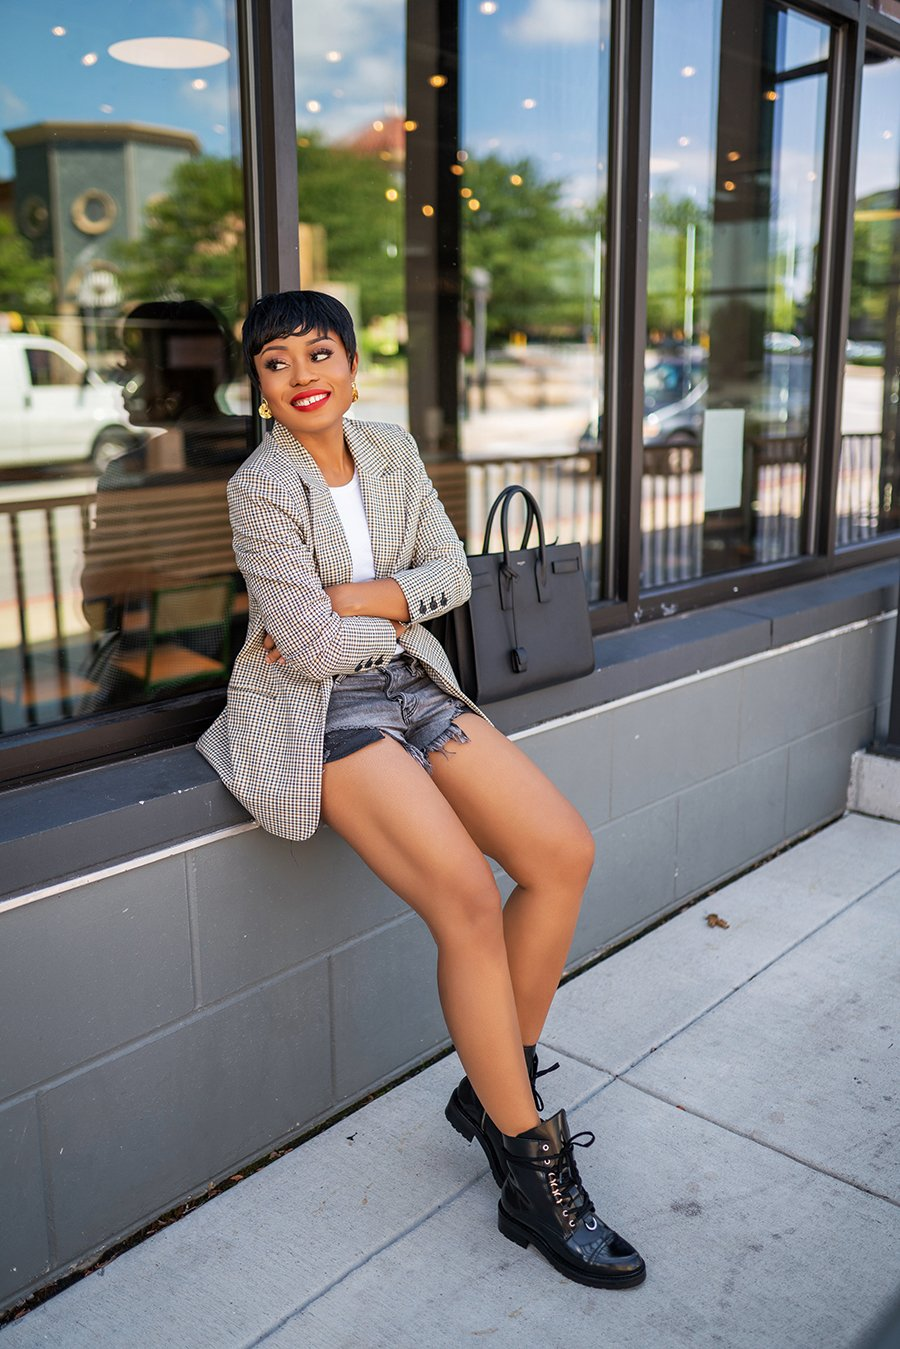 stella-adewunmi-of-jadore-fashion-blog-shares-fall-trends-to-wear-now-how-to-style-shorts-for-fall